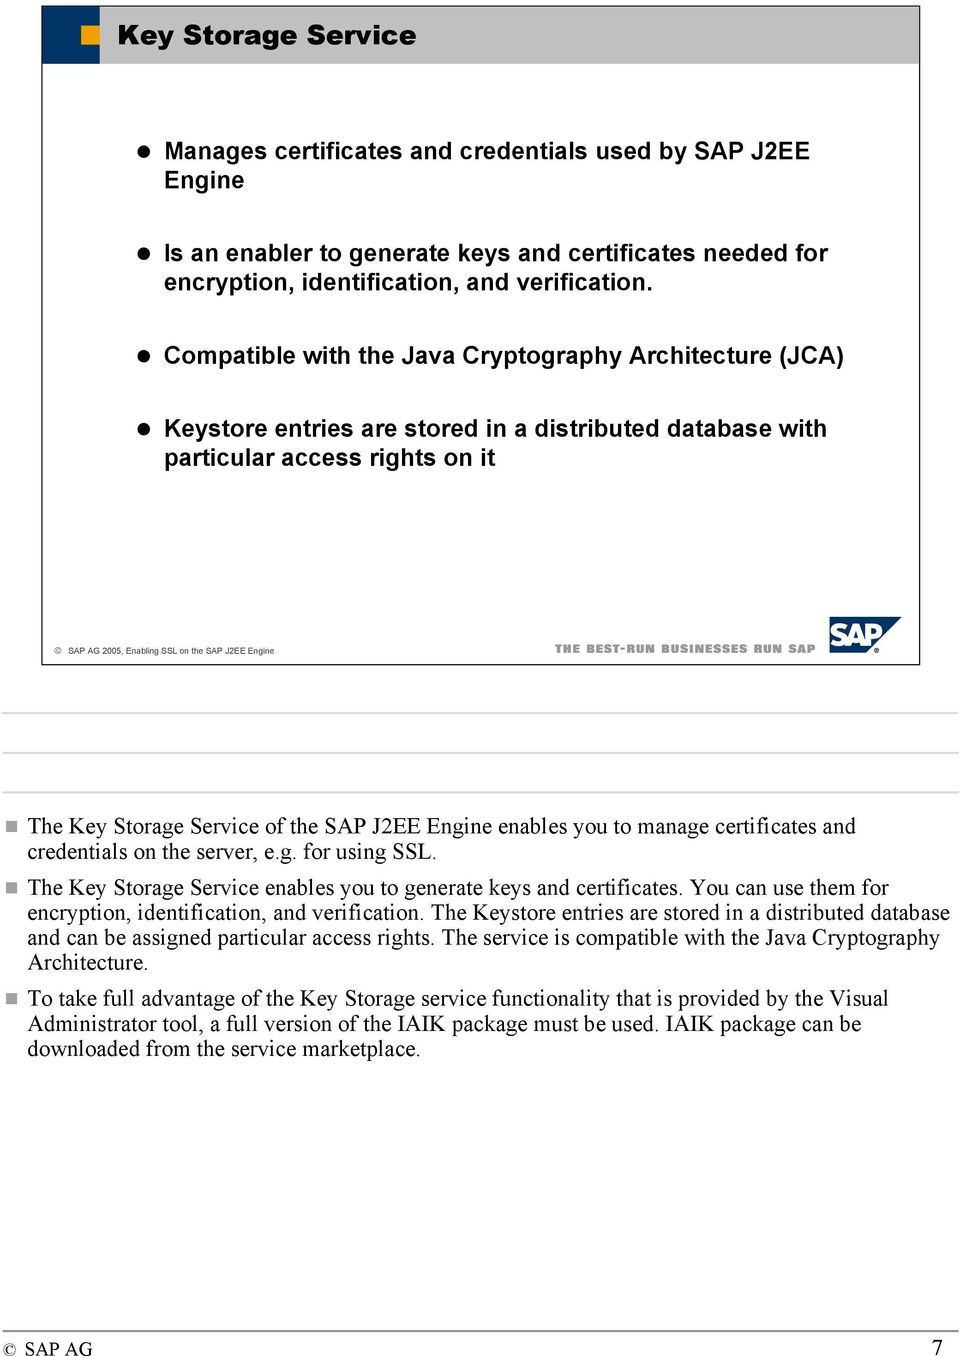 Enabling Ssl And Client Certificates On The Sap J2ee Engine Pdf